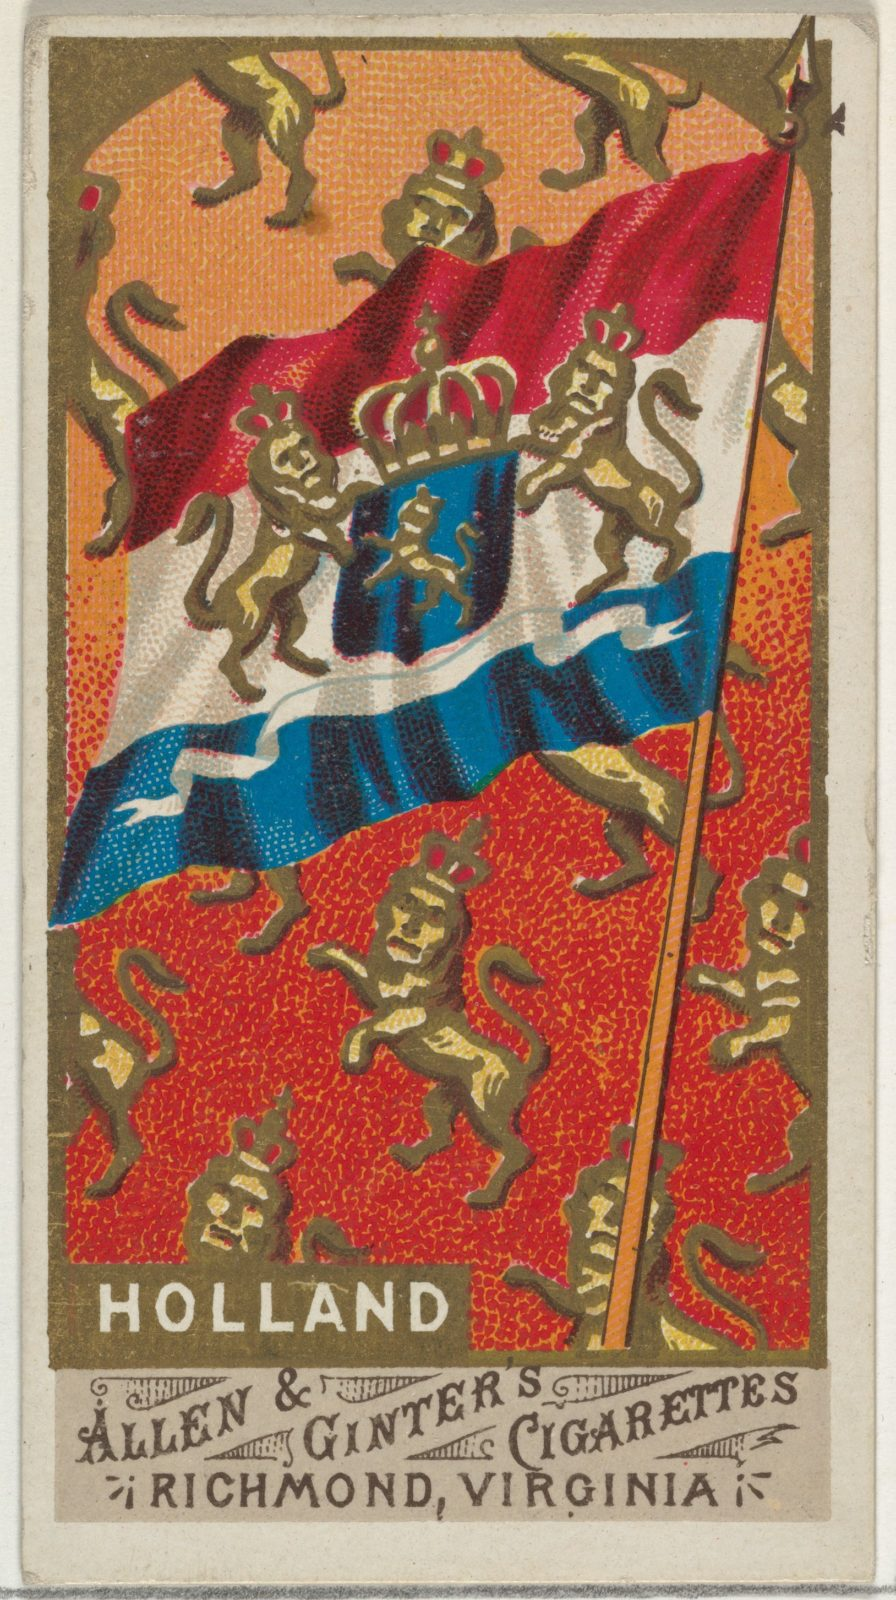 Holland, from Flags of All Nations, Series 1 (N9) for Allen & Ginter Cigarettes Brands